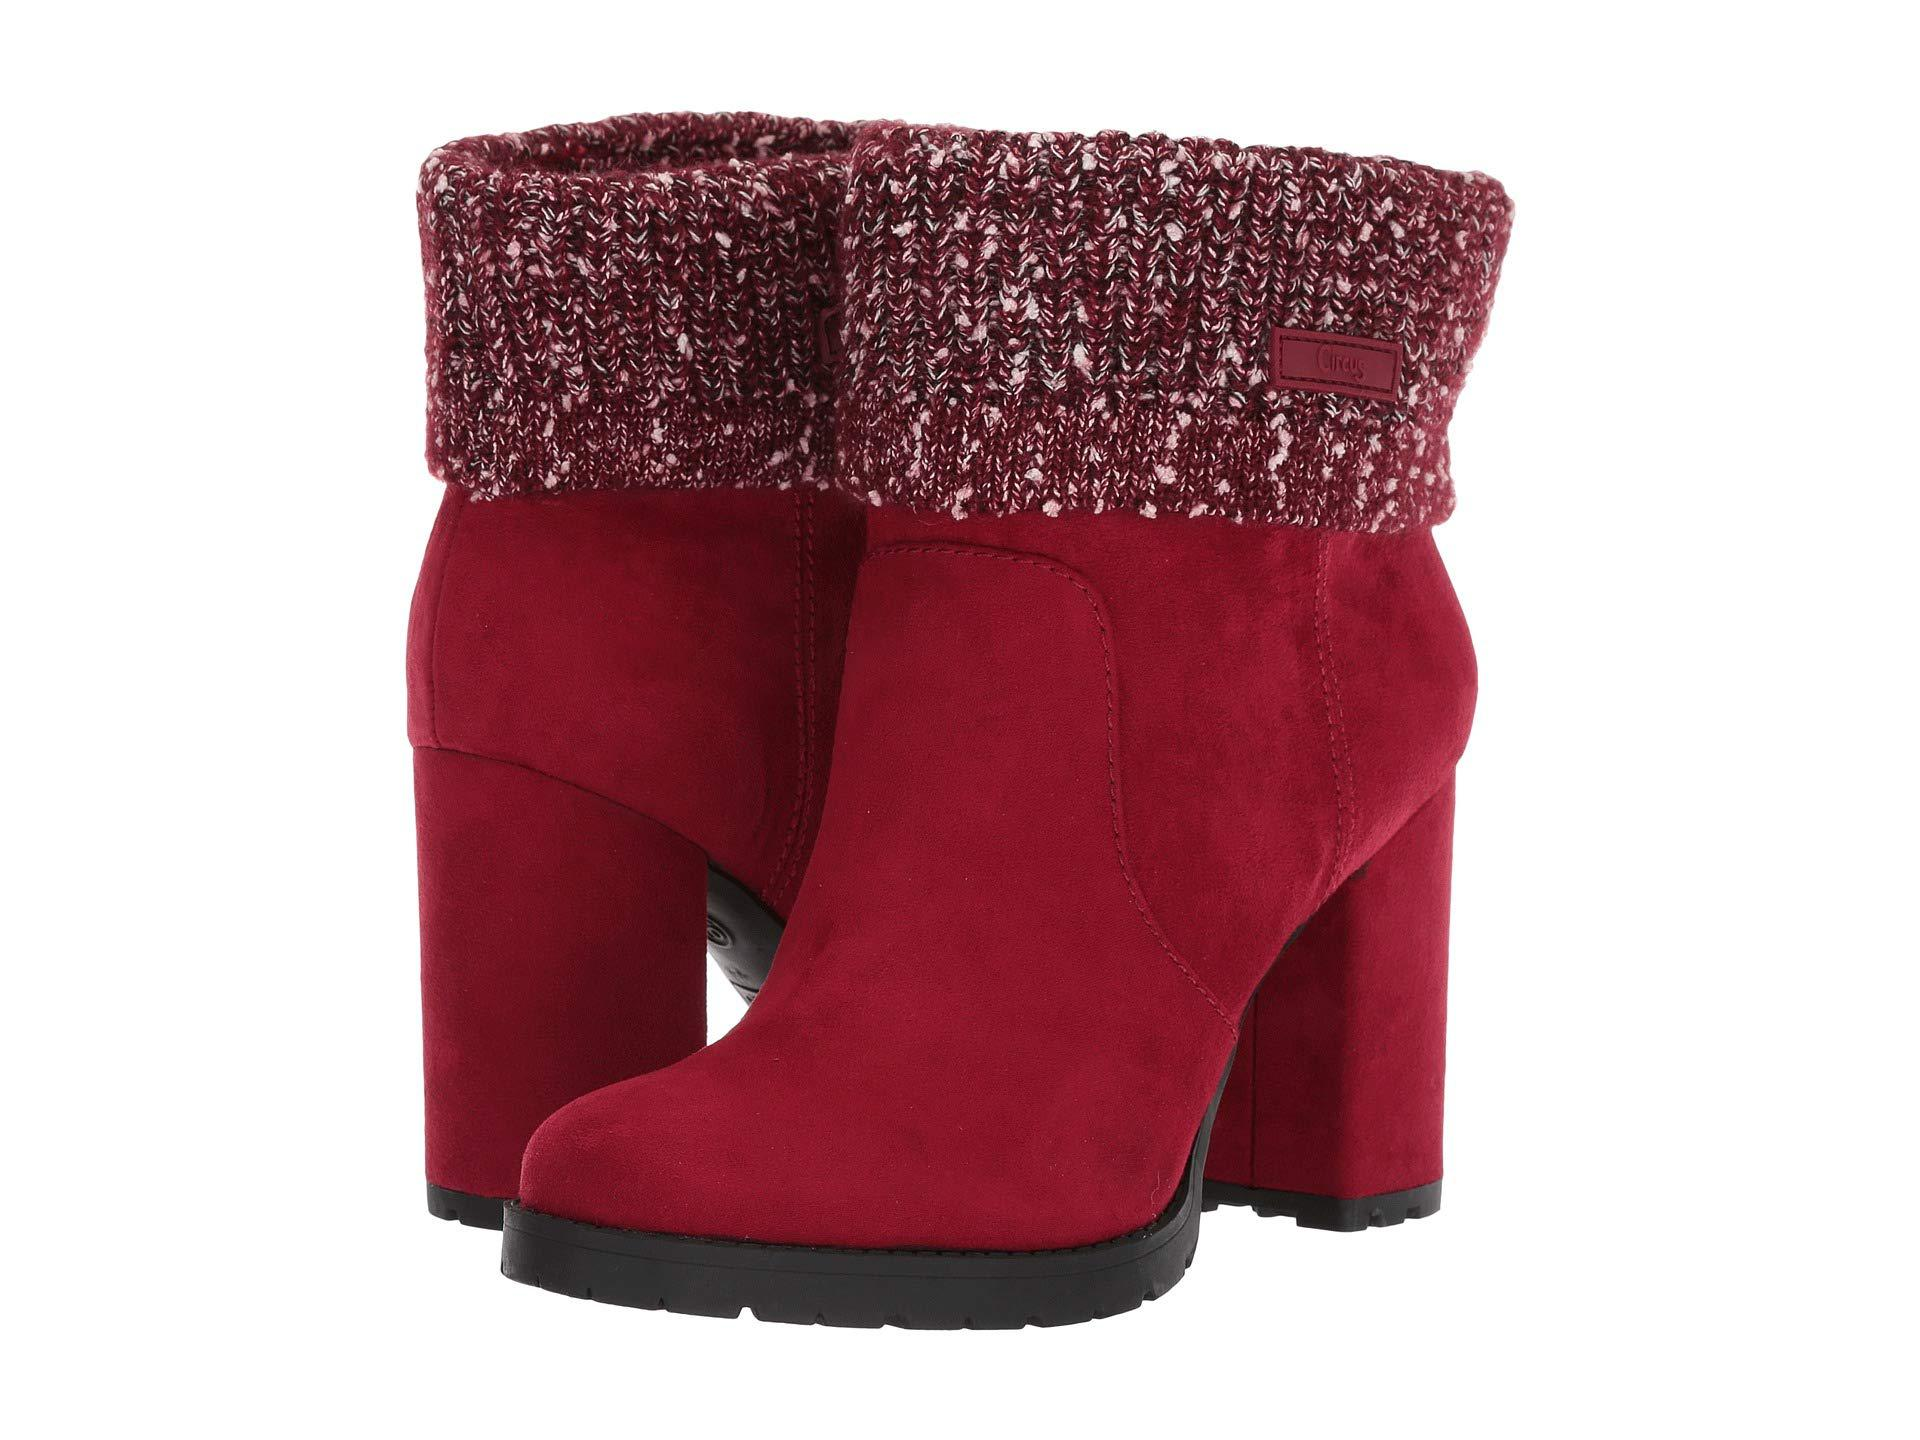 3d061d9ececa Lyst - Circus by Sam Edelman Carter in Red - Save 27%